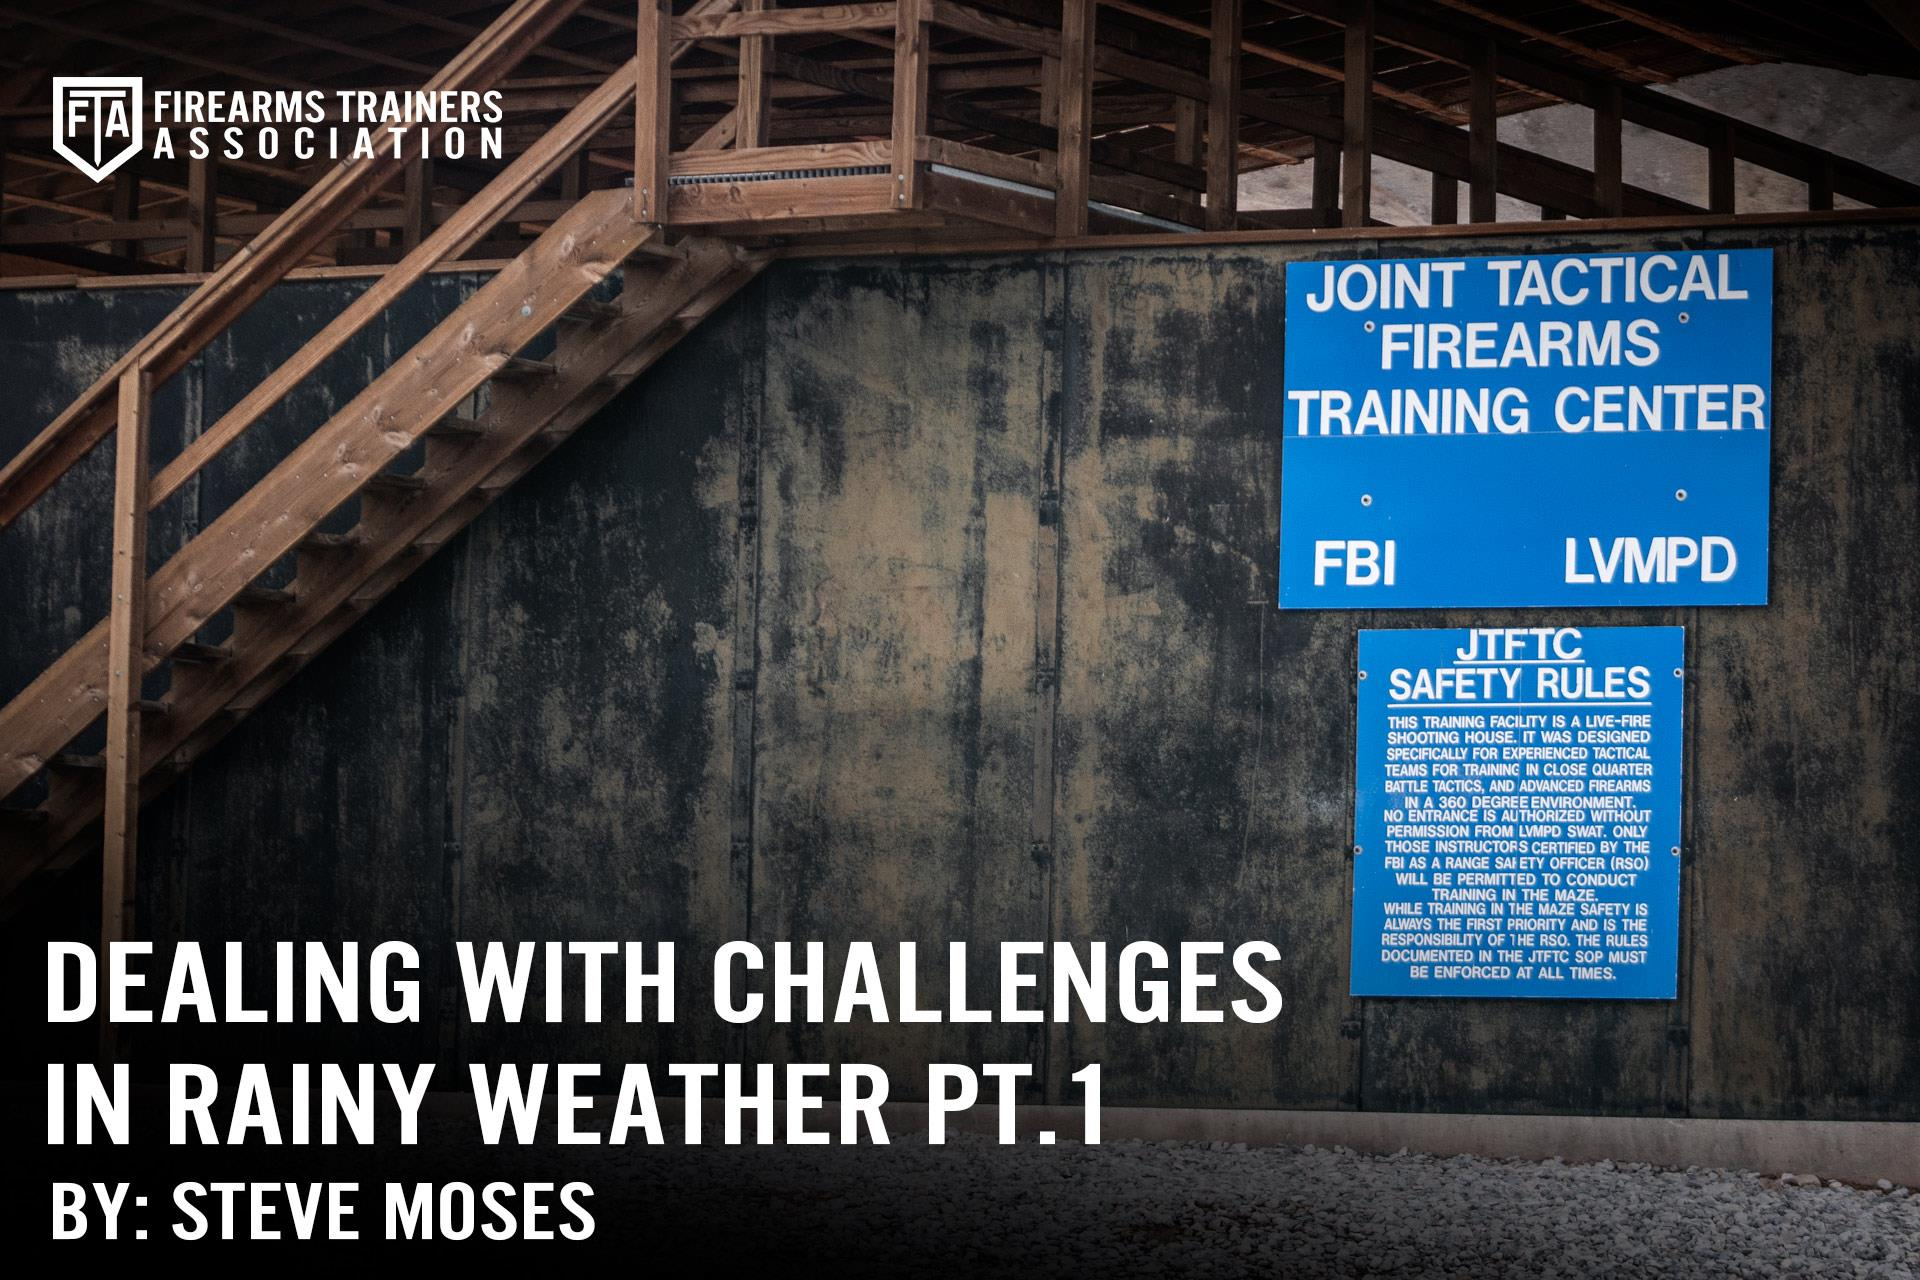 Dealing with Challenges in Rainy Weather Part One